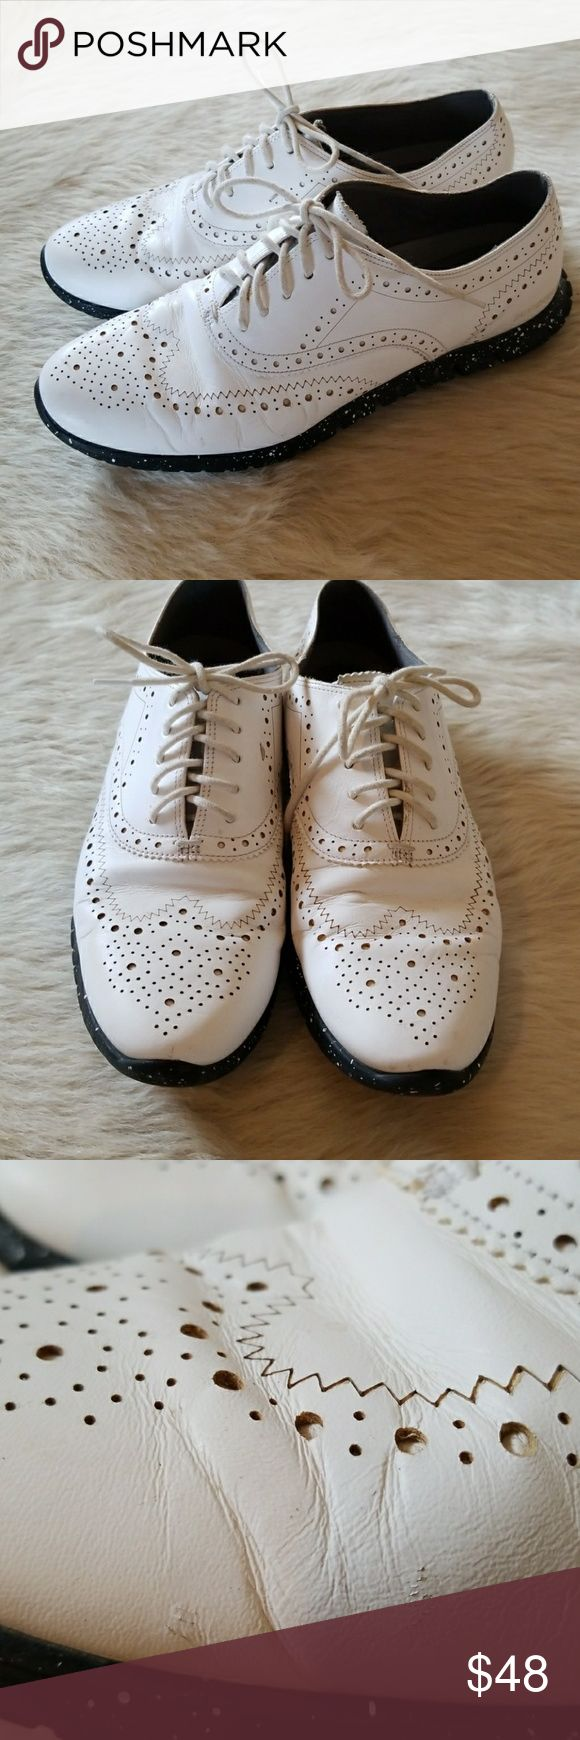 Cole Haan Zero Grande Oxford Sneakers COLE HAAN ZERO GRANDE OXFORD SNEAKERS. CUTE,PERFECT COLORS,DRESS UP OR DOWN. EXTREMLY COMFORTABLE.. **PICTURES DEPICT CONDITION**THEY ARE IN REALLY GOOD SHAPE***RUN TRUE TO SIZE** Cole Haan Shoes Sneakers